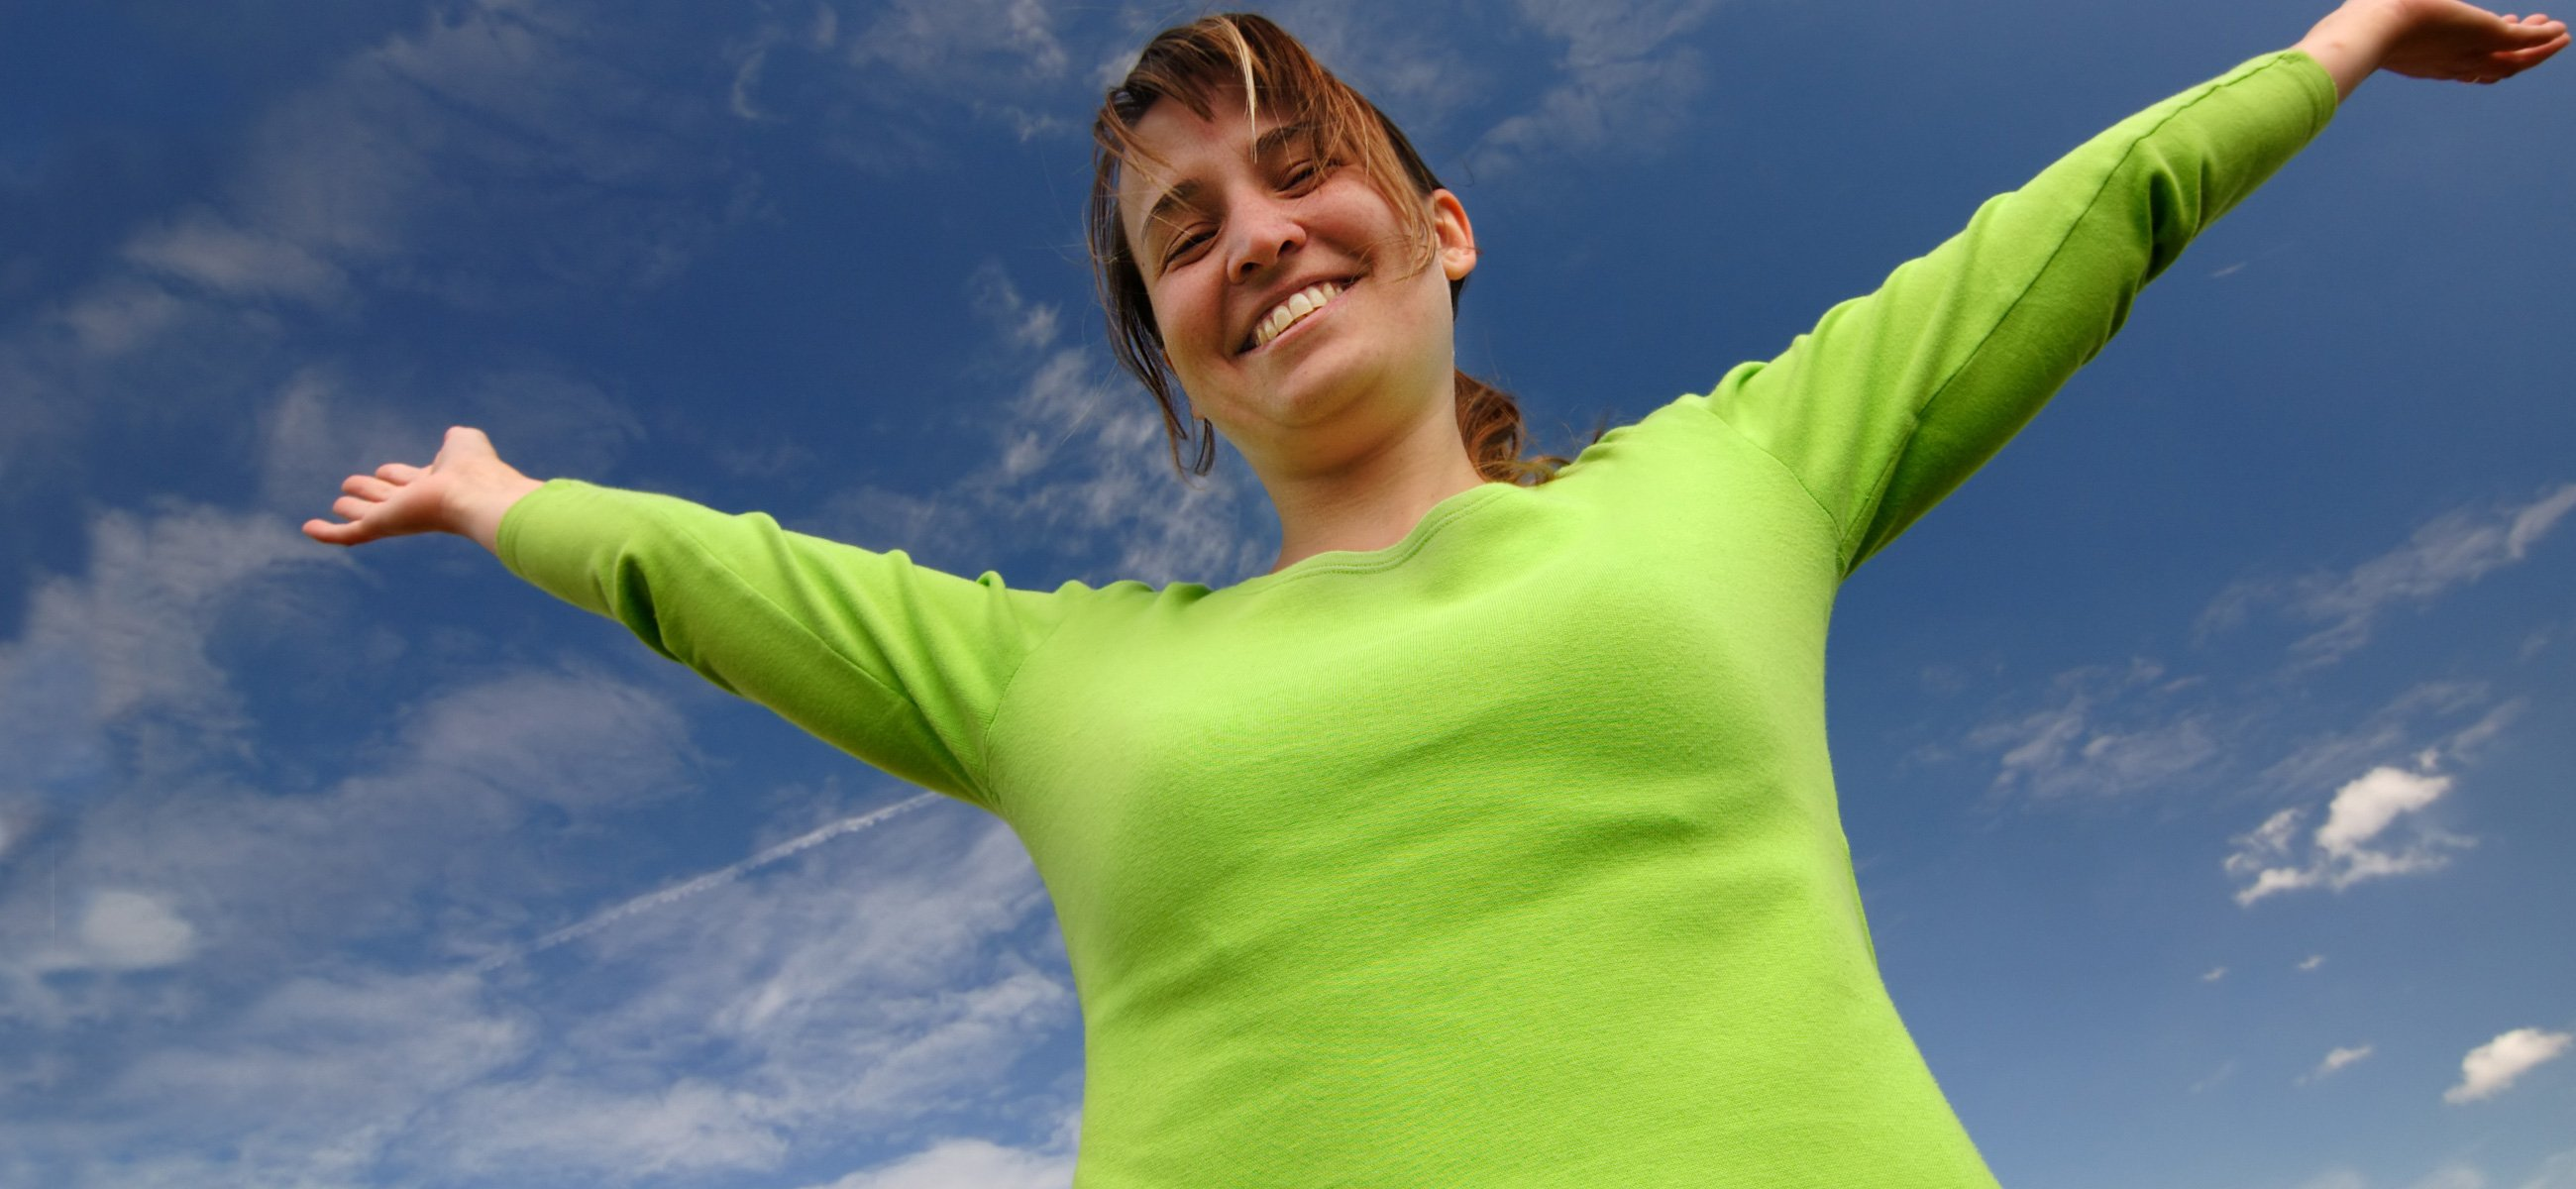 Happy lady with arms in air